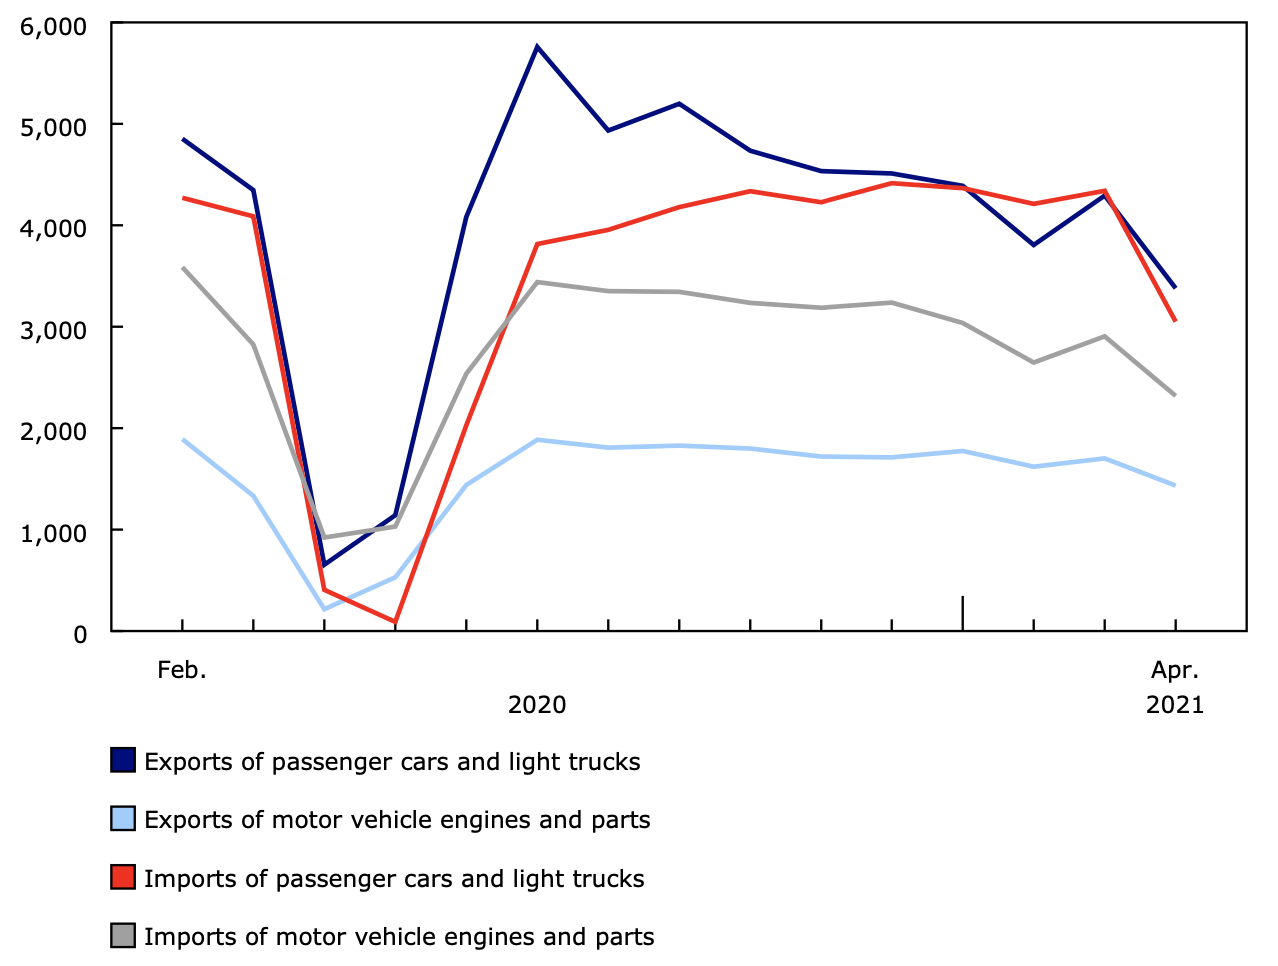 Exports and imports of passenger cars and light trucks, and motor vehicle engines and parts (in millions)